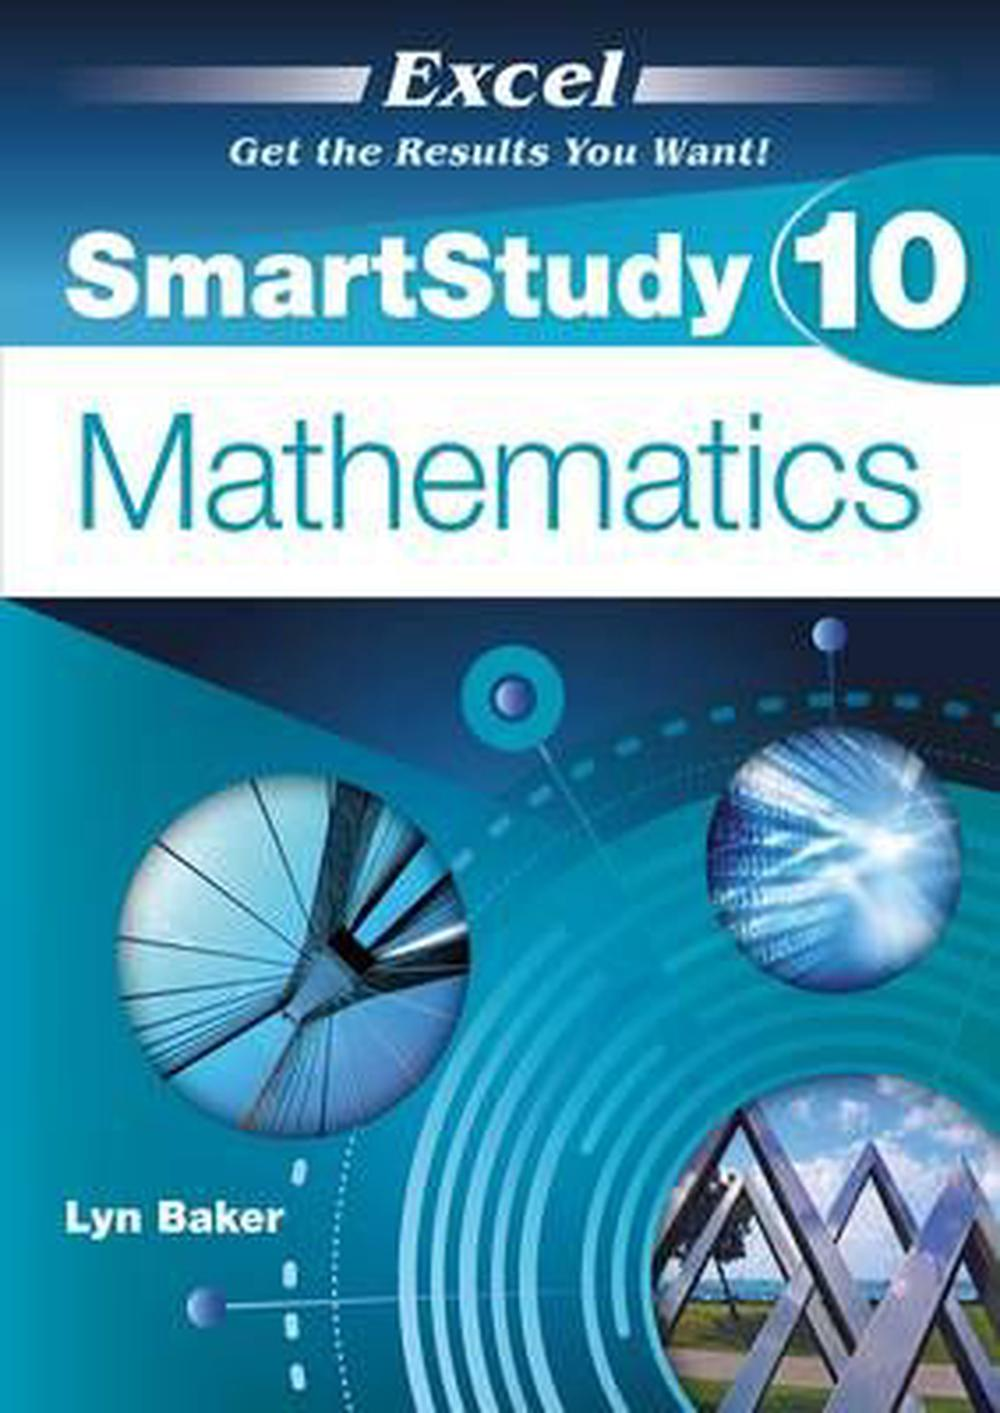 Excel Smartstudy Year 10 Mathematics